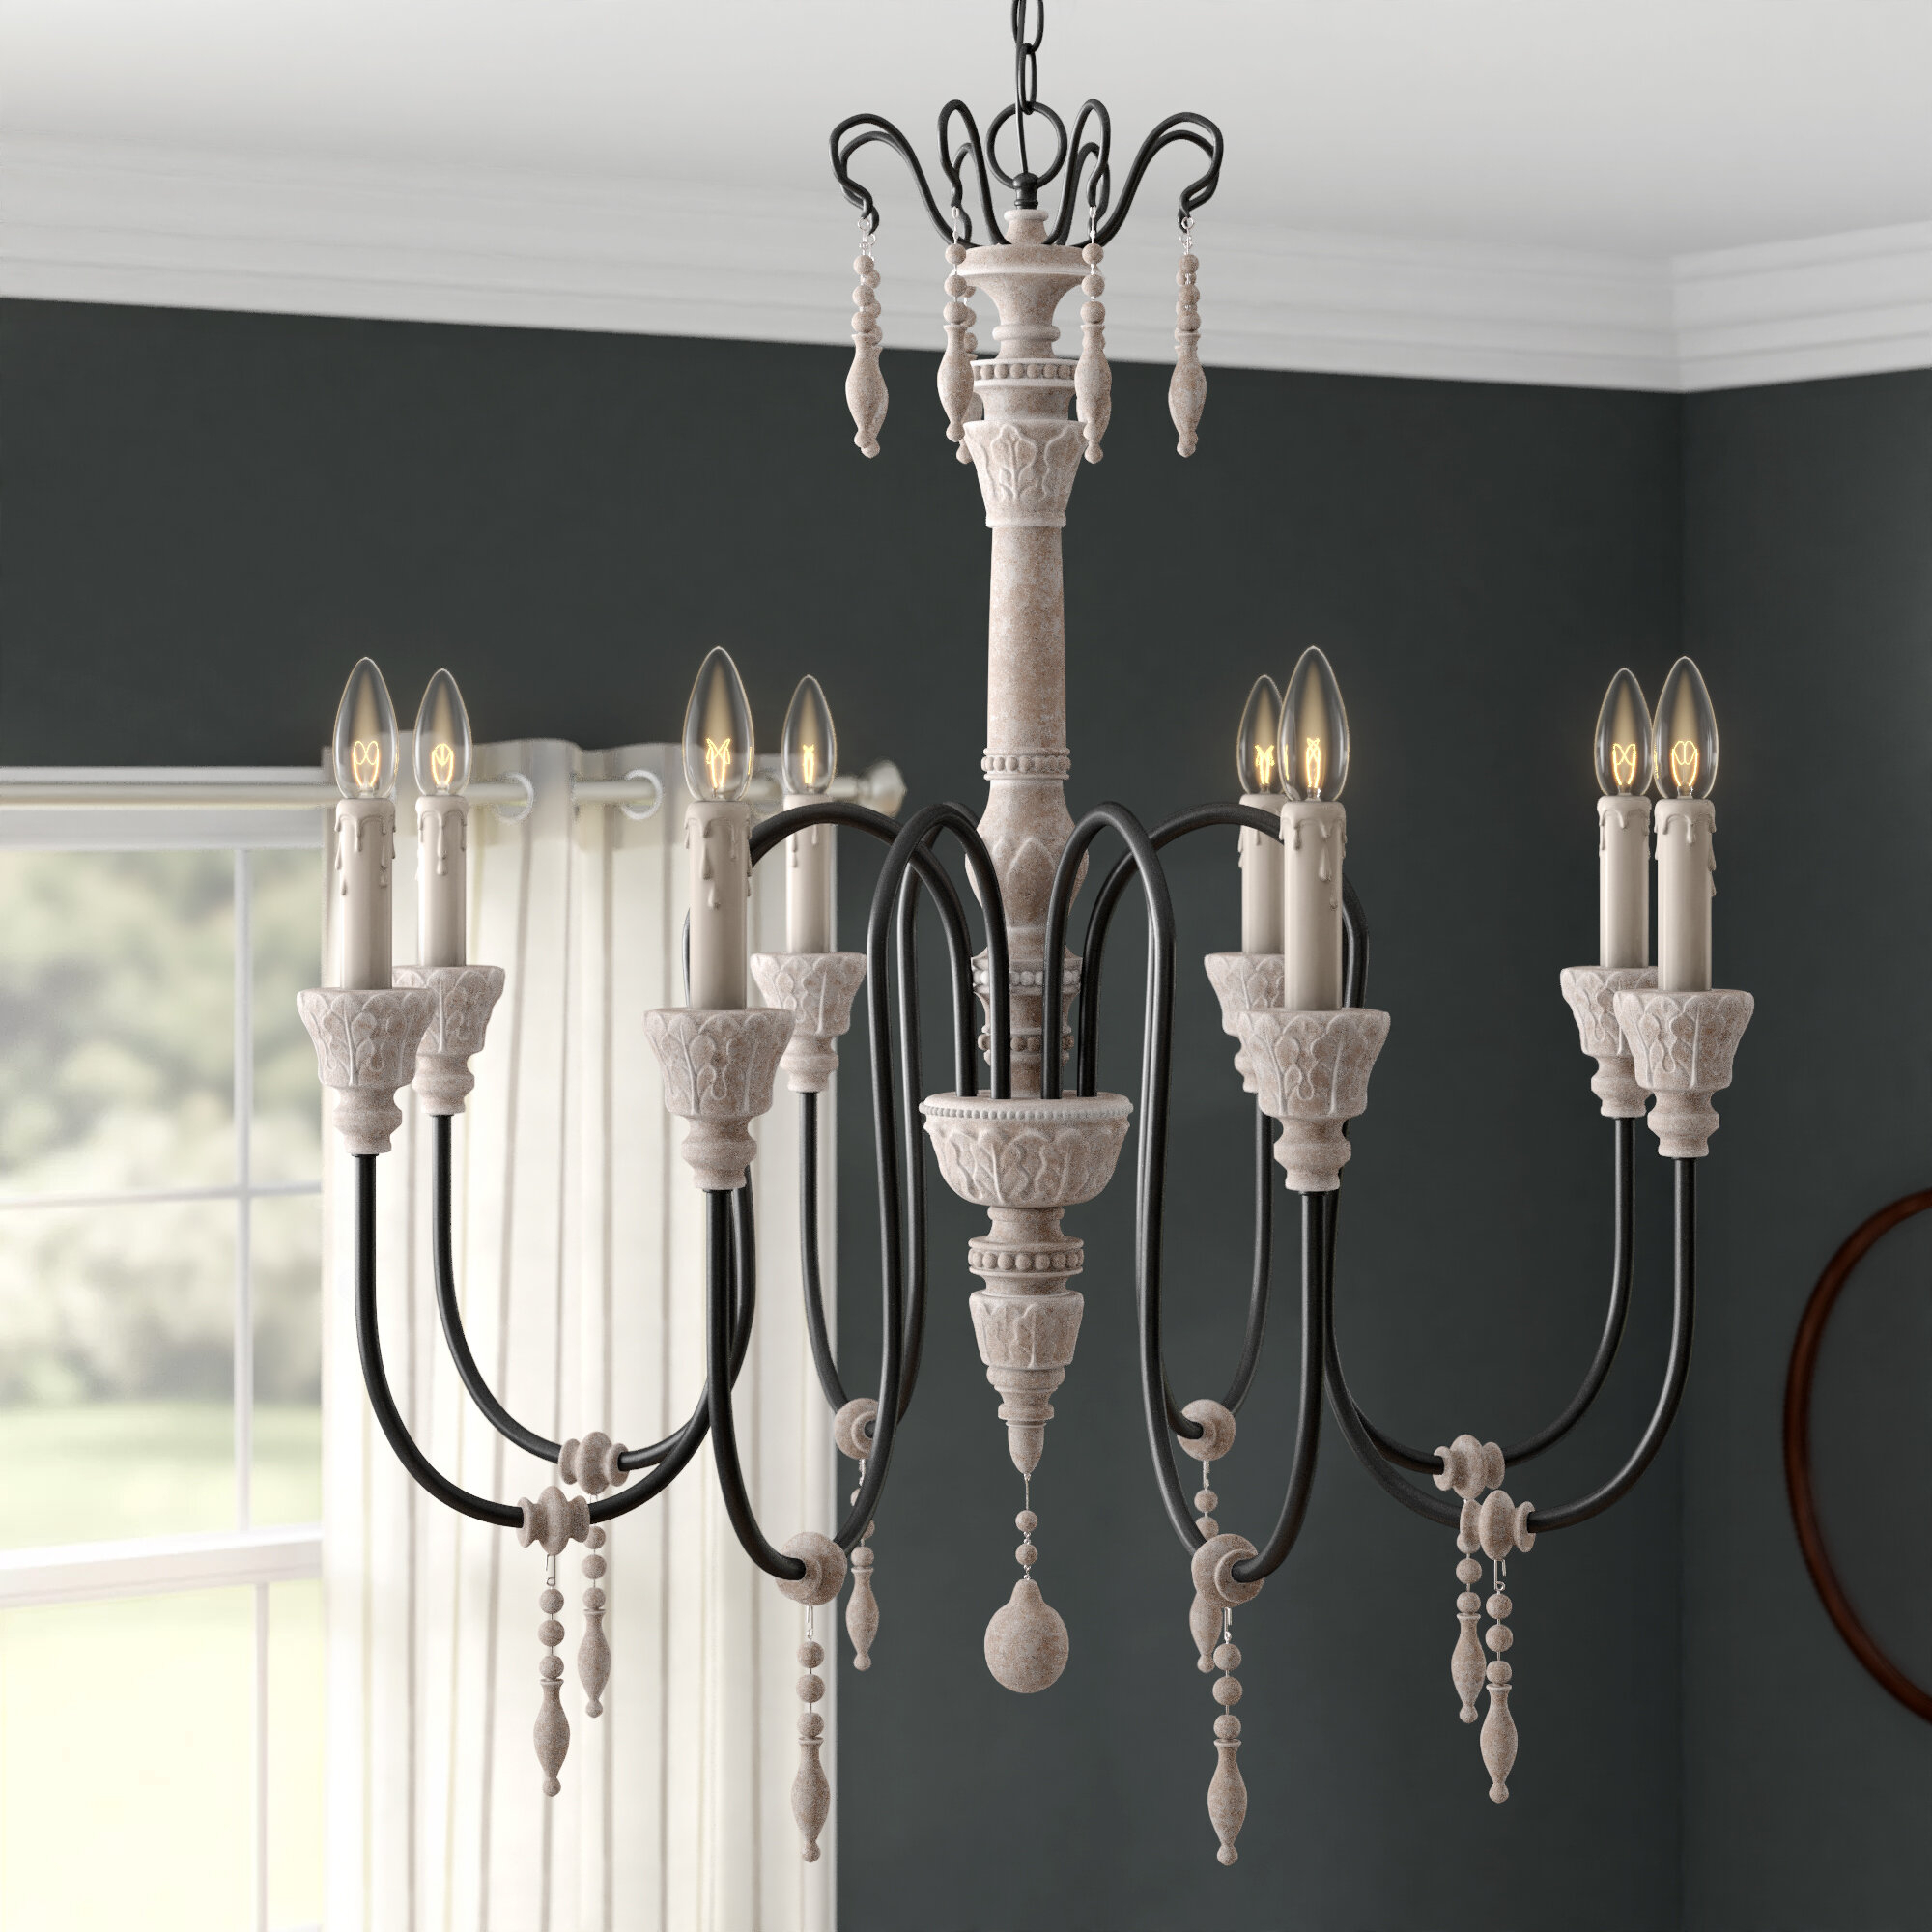 Ailsa 8 Light Candle Style Chandelier Throughout Armande Candle Style Chandeliers (Image 2 of 30)